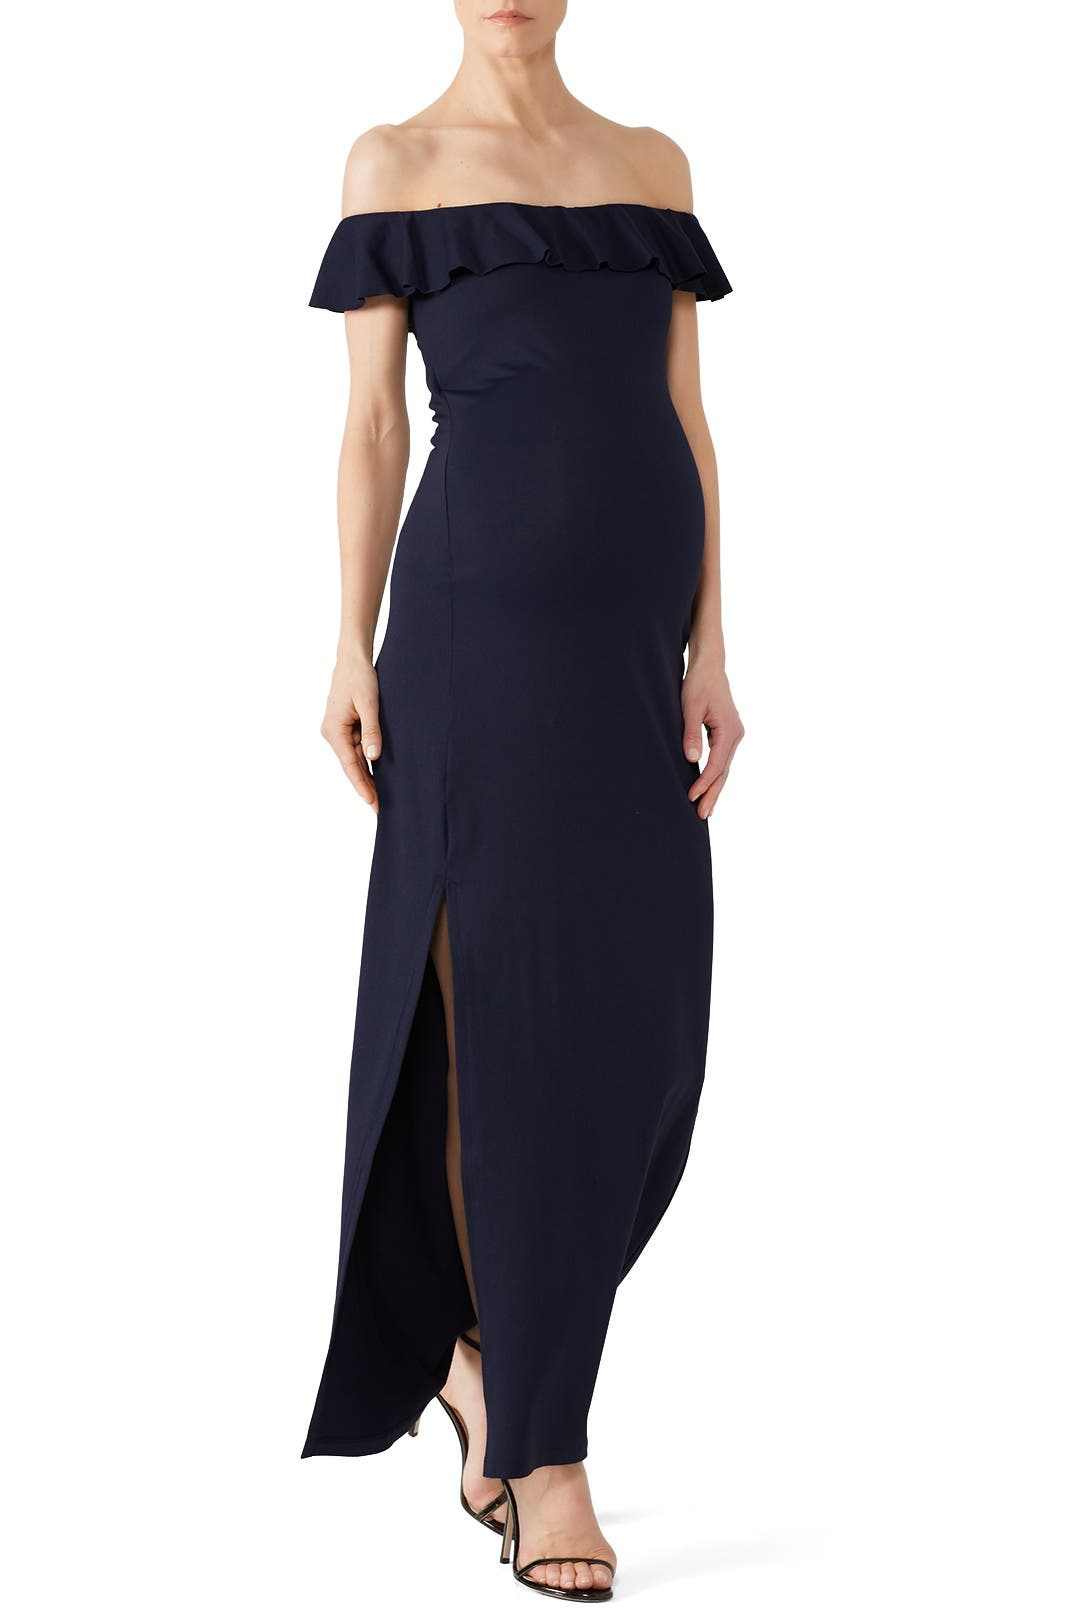 Navy Ruffle Slit Maternity Gown By Susana Monaco For 30